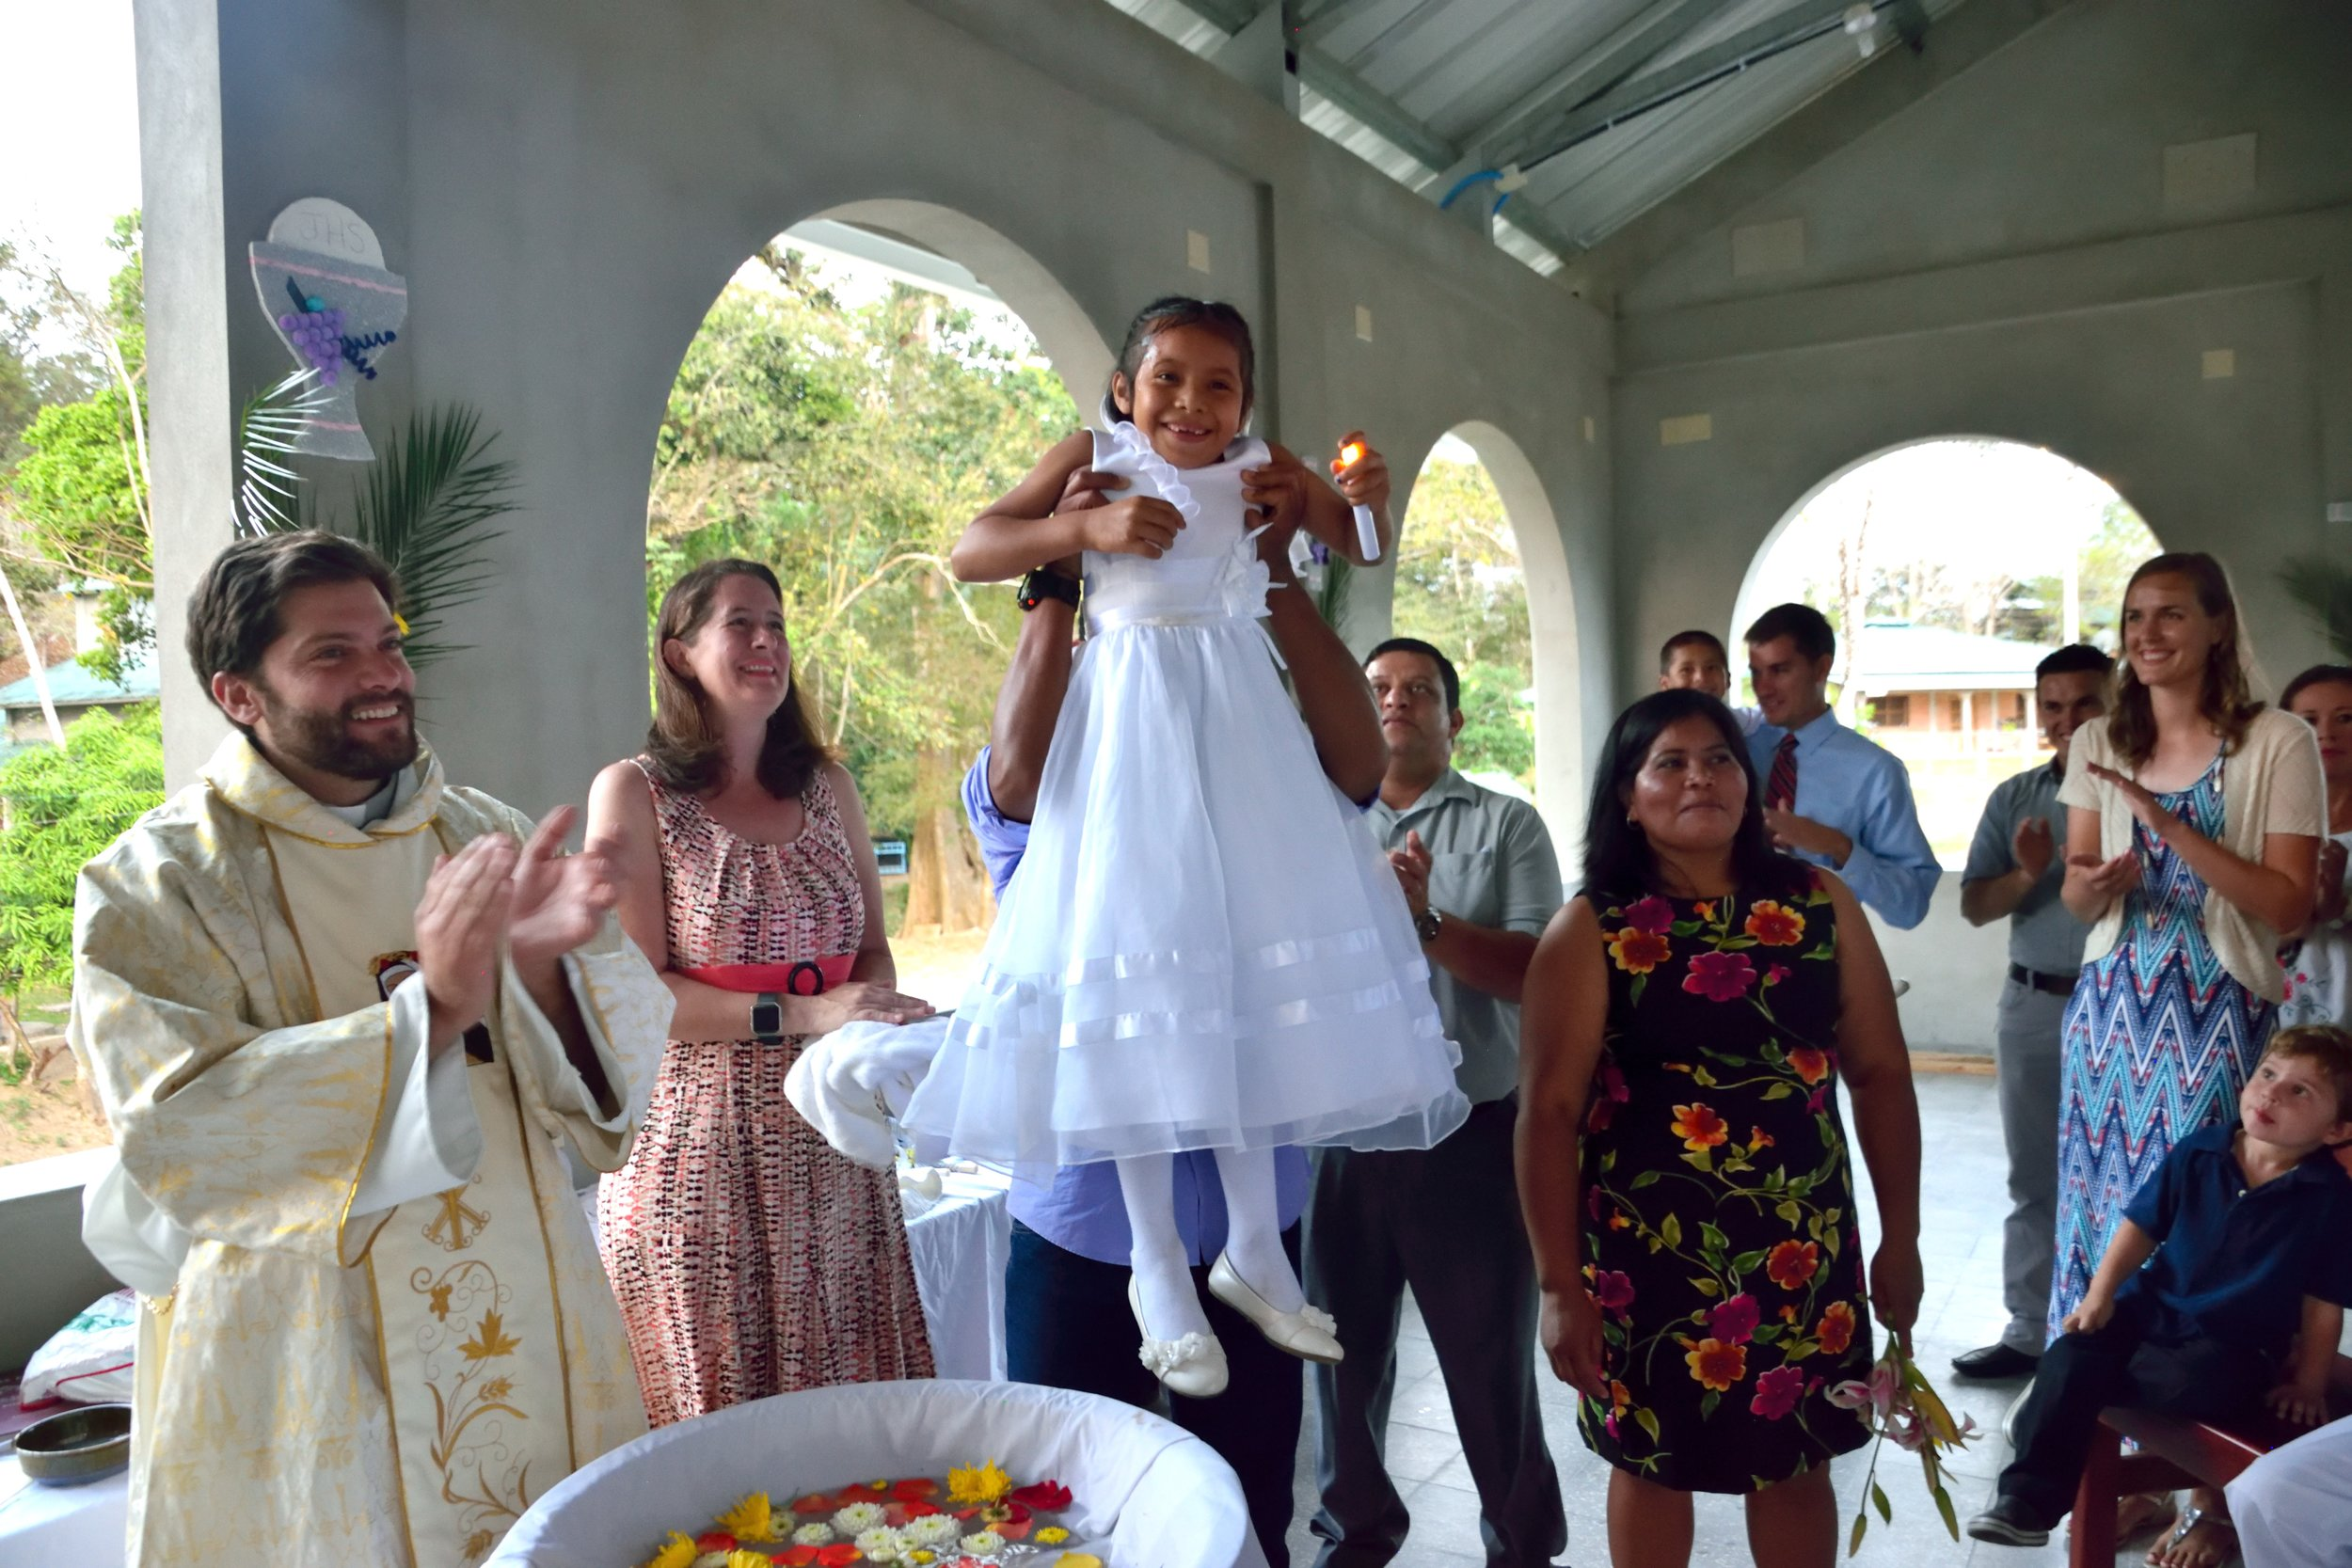 Sara being held up just after at her baptism in during 'Semana Santa' (Holy Week) in 2017.